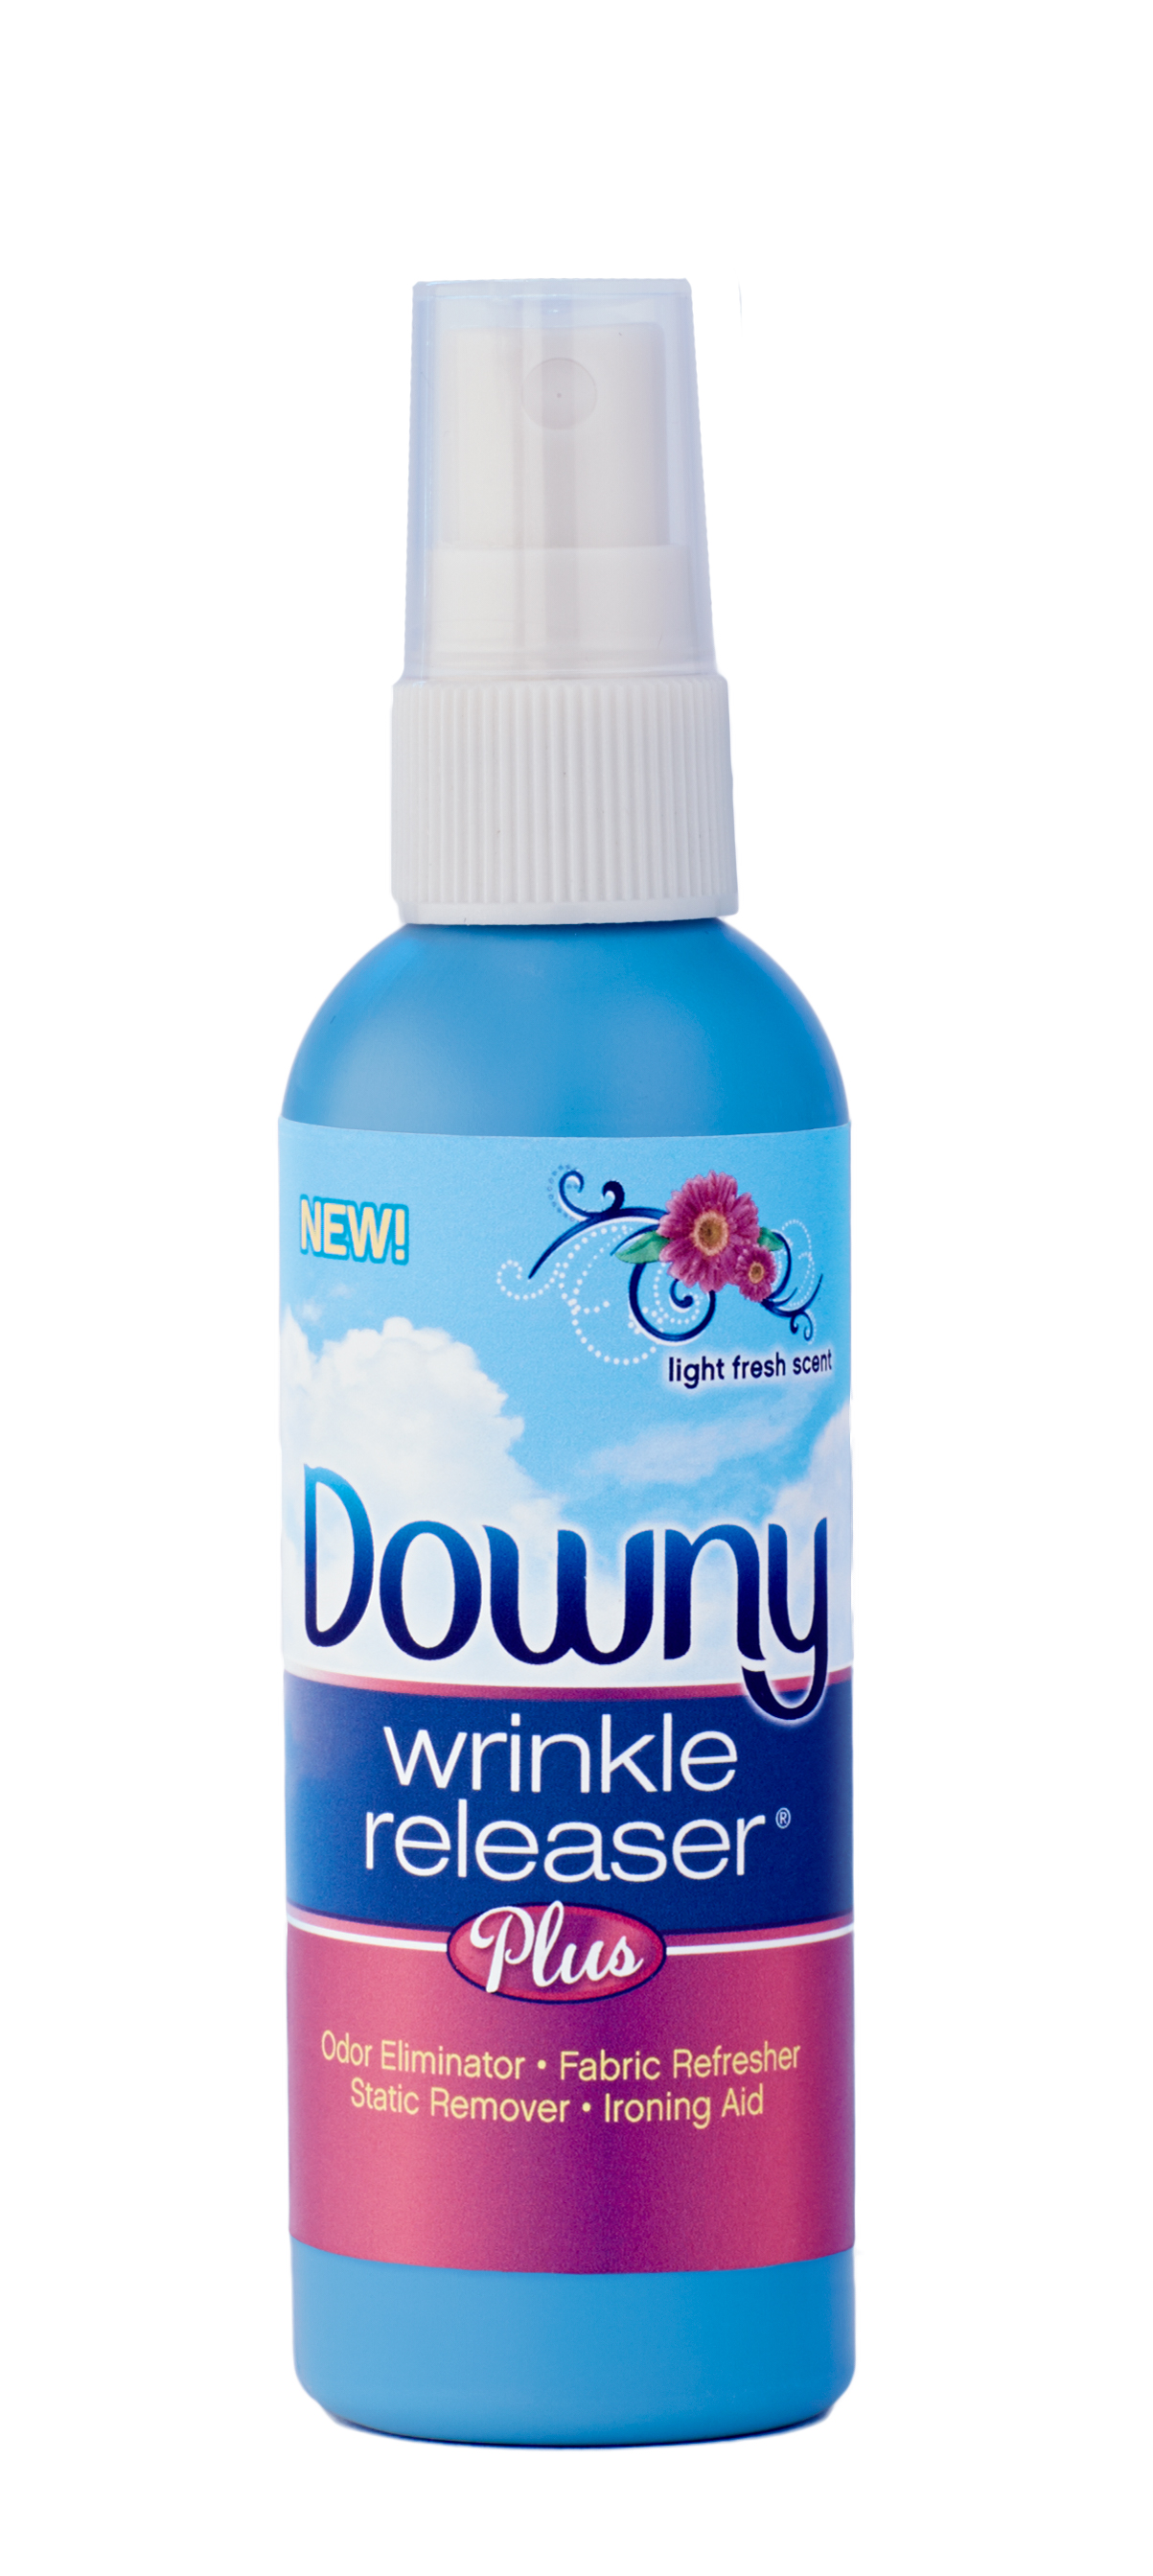 New downy wrinkle releaser plus features 101 uses in one wonderbottle reinvented trigger spray - New uses for the multifunctional spray ...